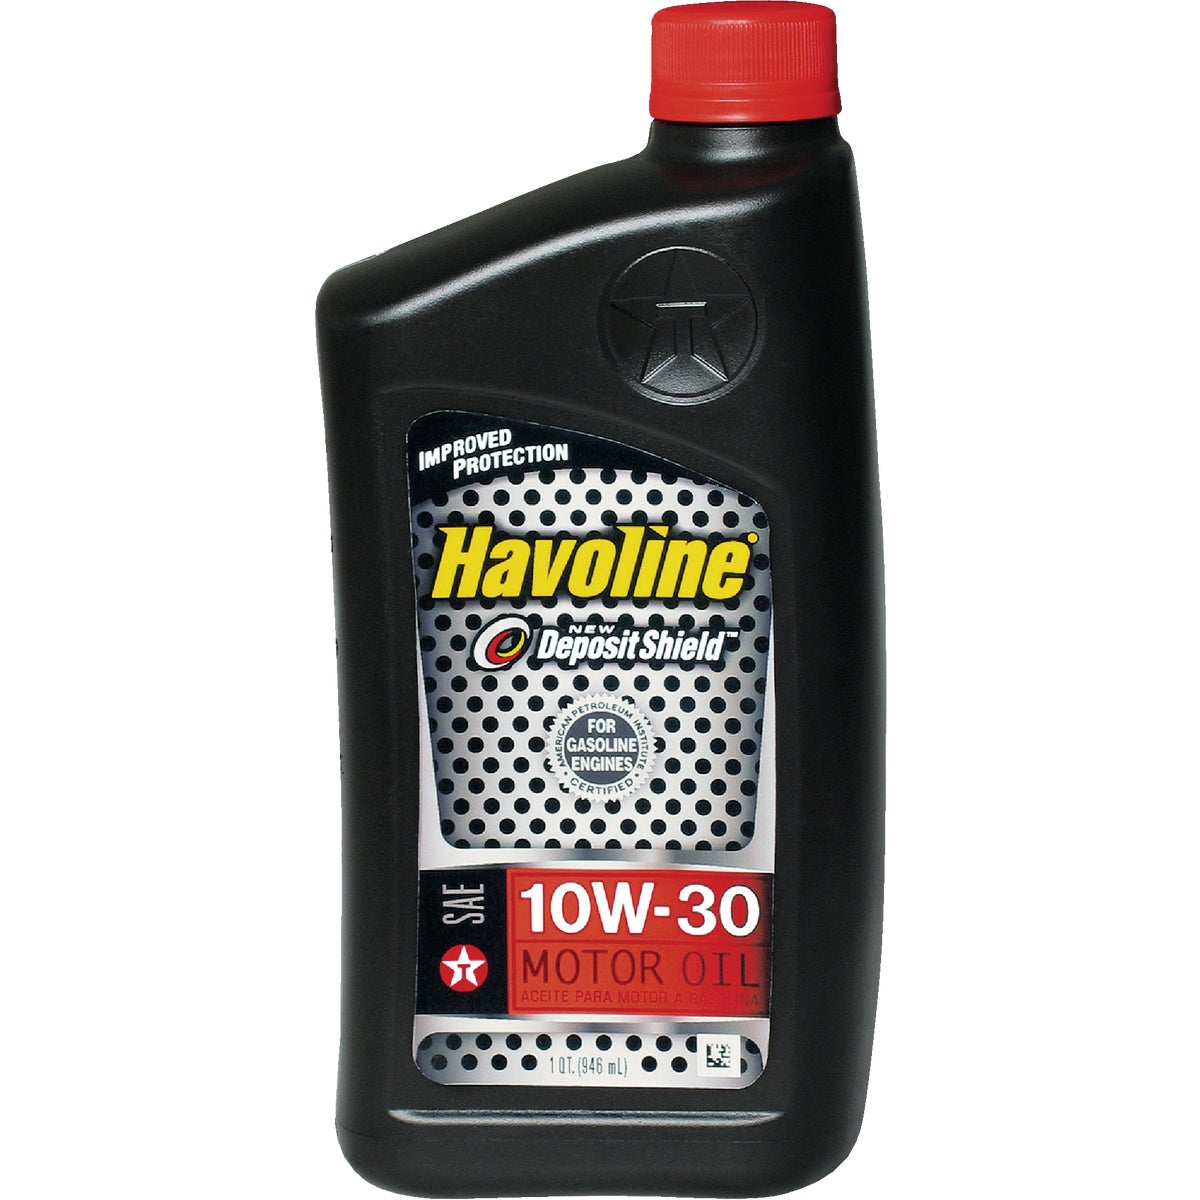 HAVOLINE 10W30 MOTOR OIL - HV13-12 by Christenson Oil